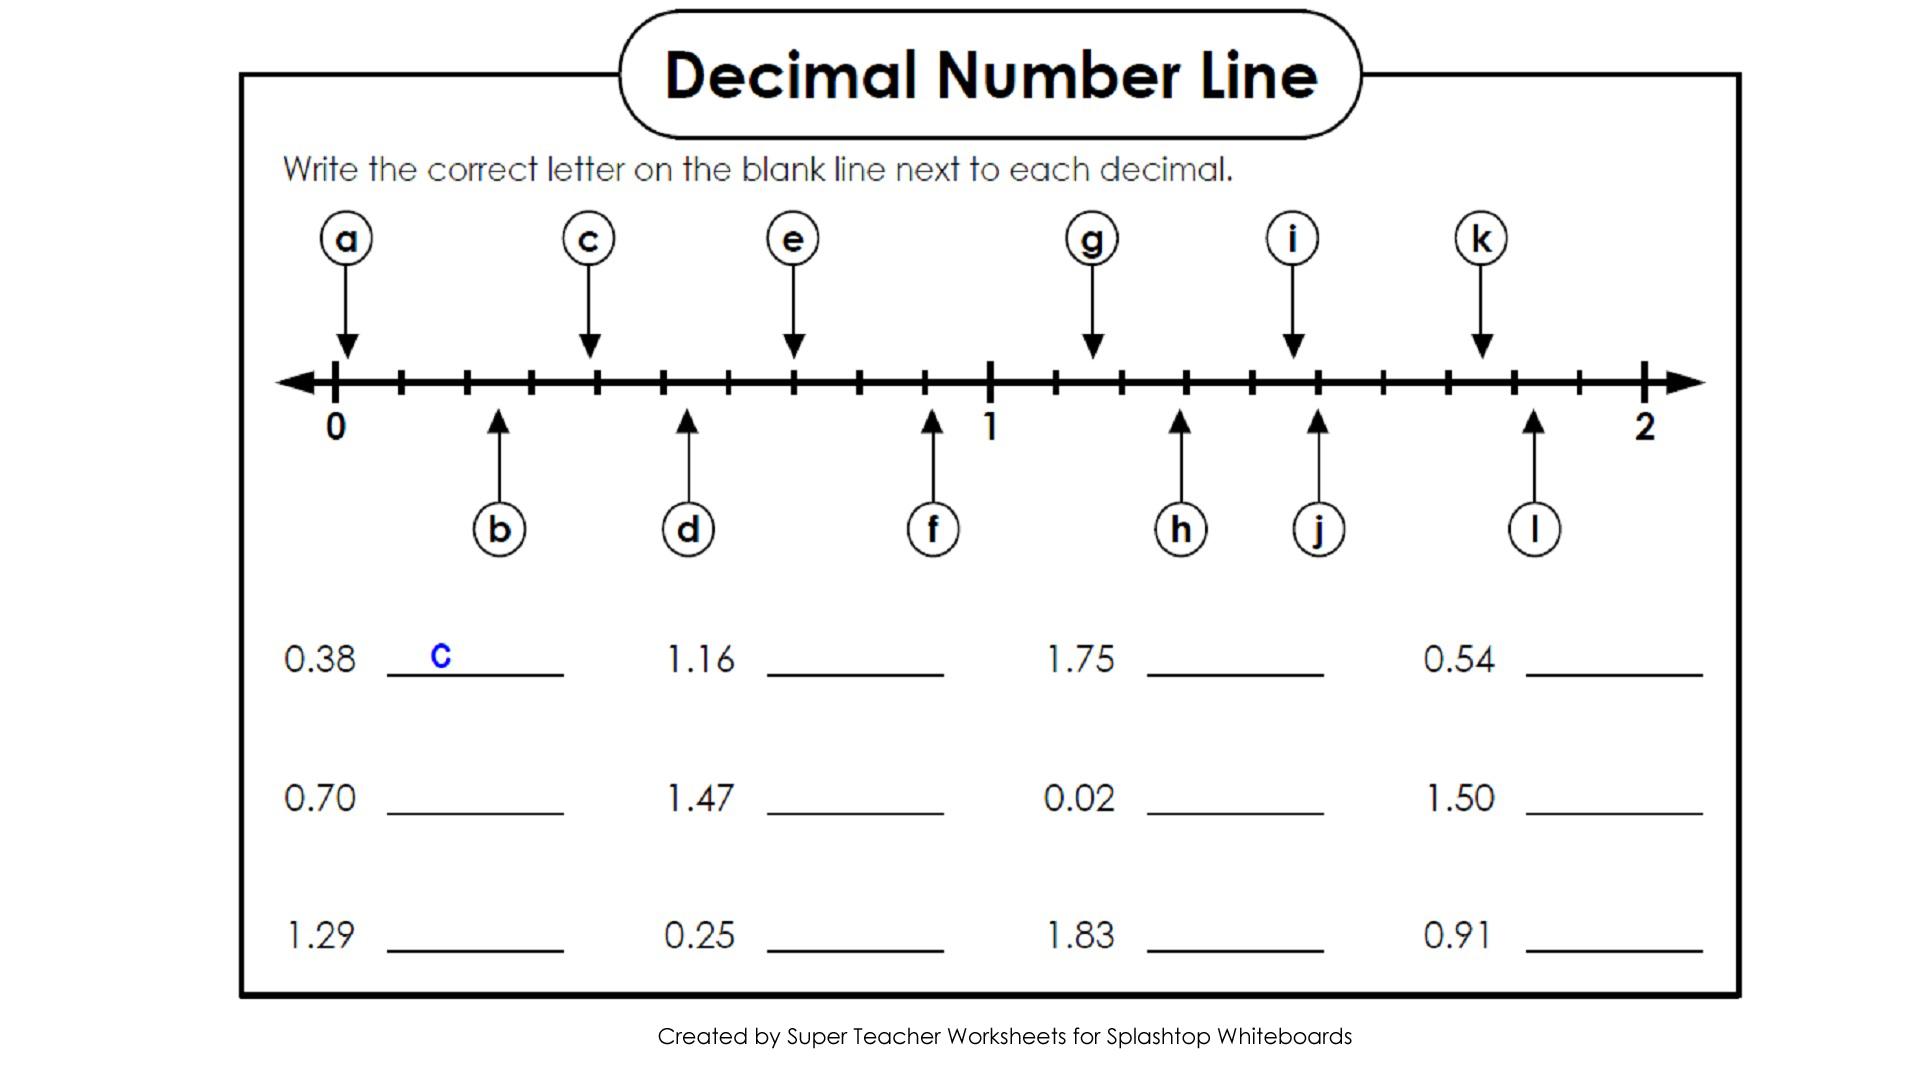 decimal number line worksheet – Decimals on Number Line Worksheet